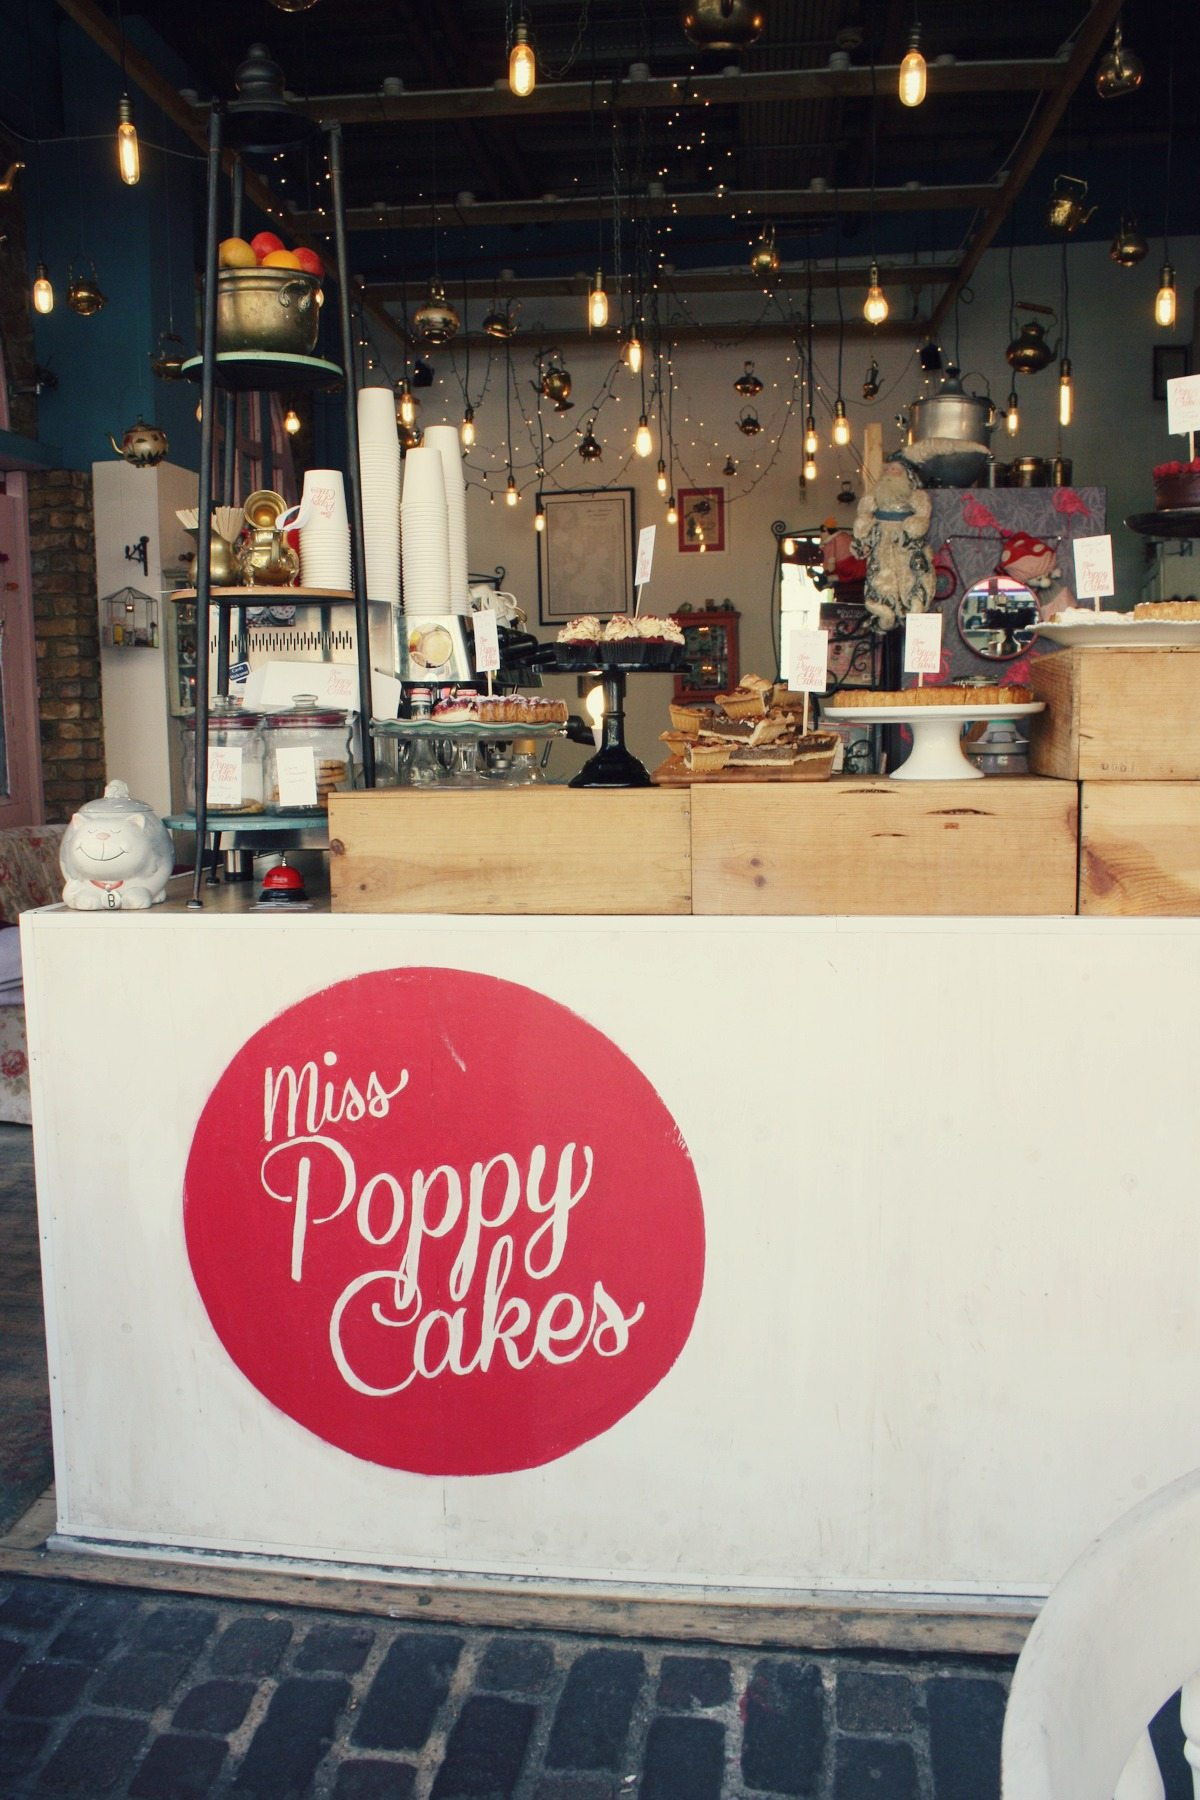 Miss Poppy Cakes counter